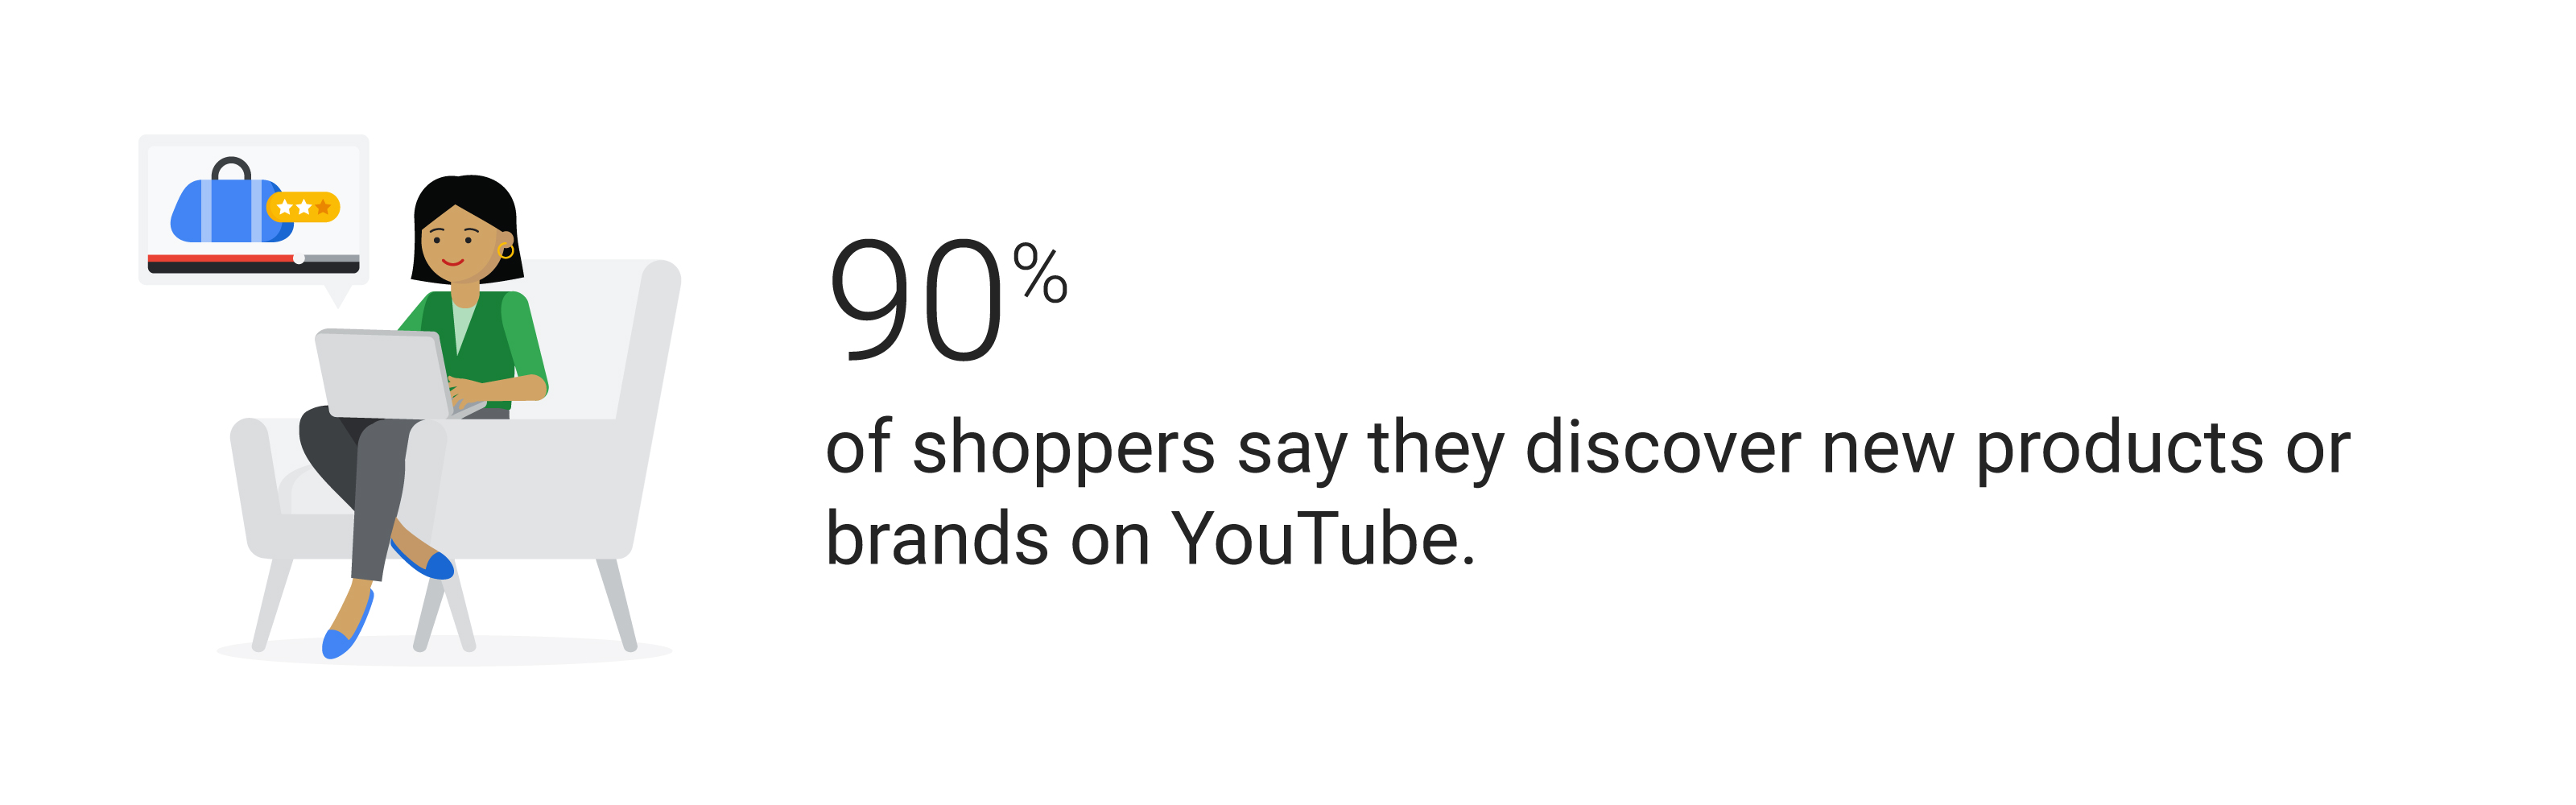 90% of shoppers say they discover new products or brands on YouTube.